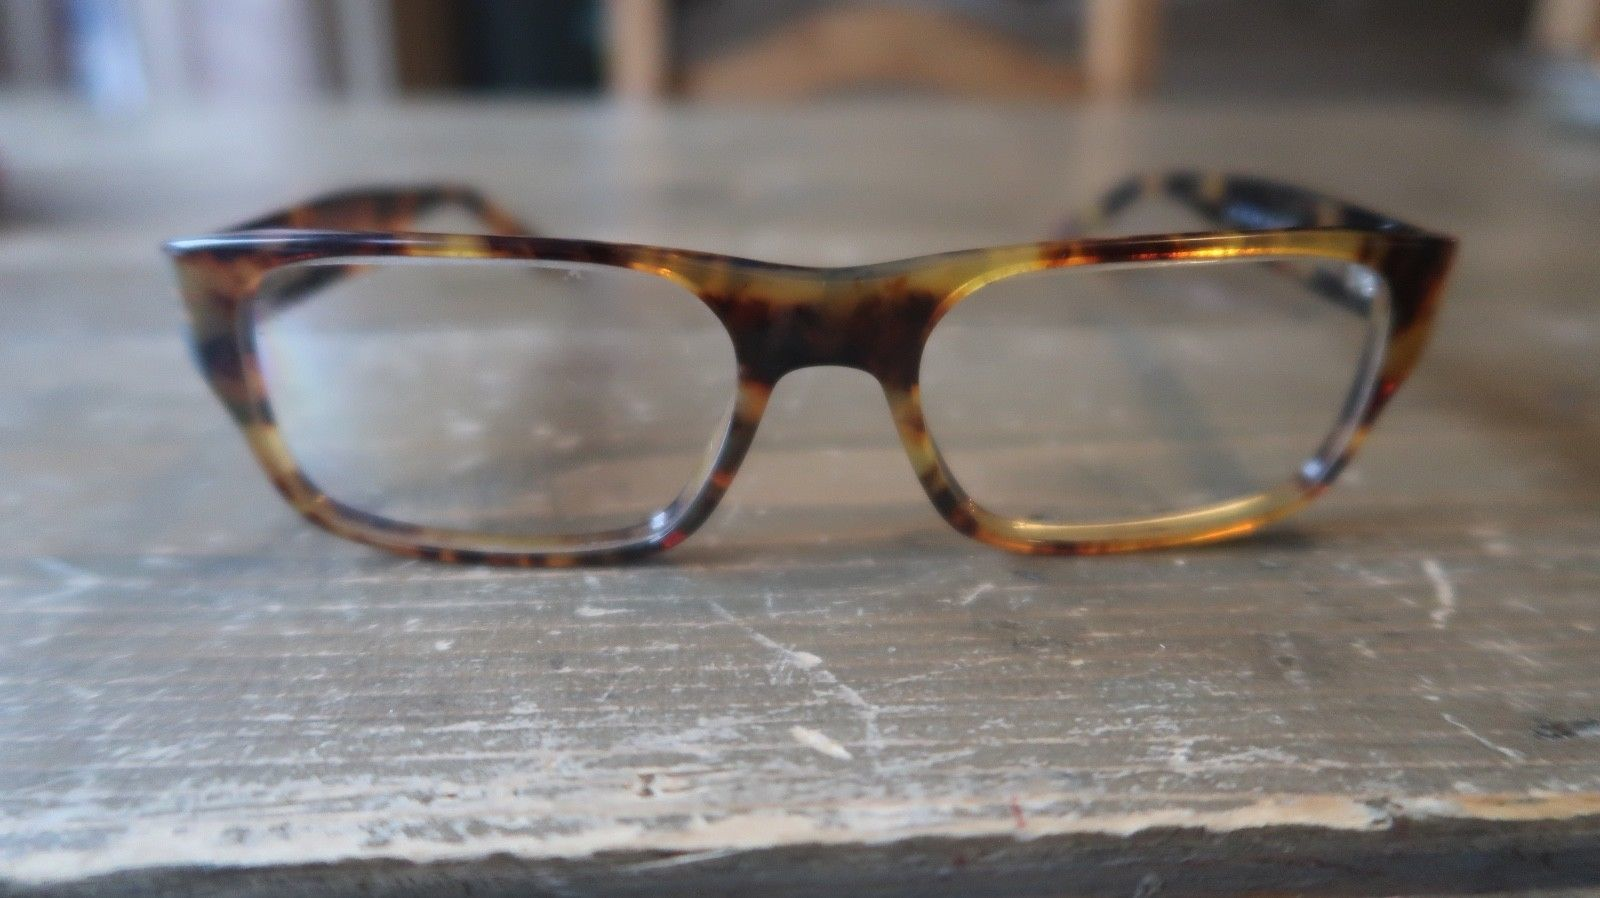 158645ffa91 Ray Ban Rb 5122 Col 2291 52 17 140mm and 50 similar items. S l1600